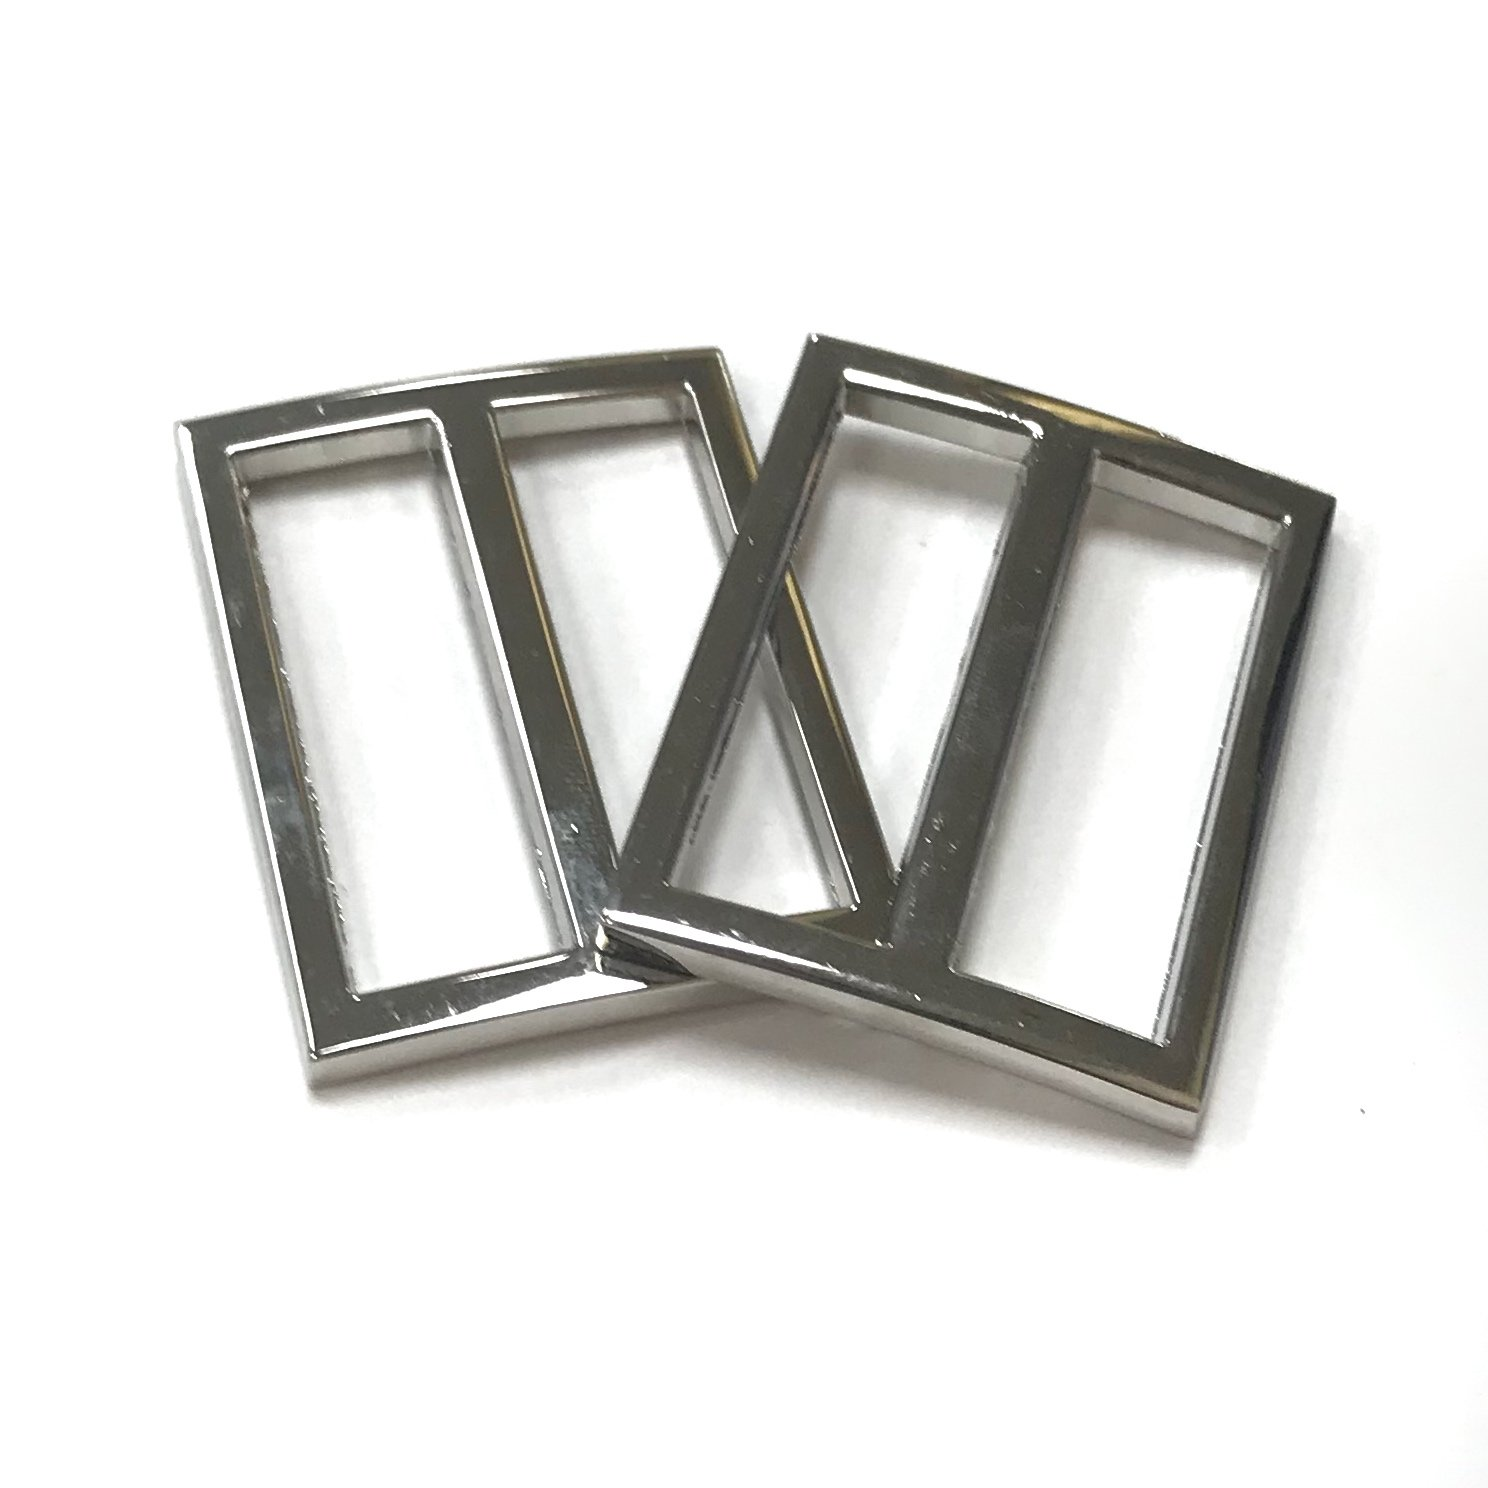 Rectangle Strap Slides- Set of 2 - 1 1/4